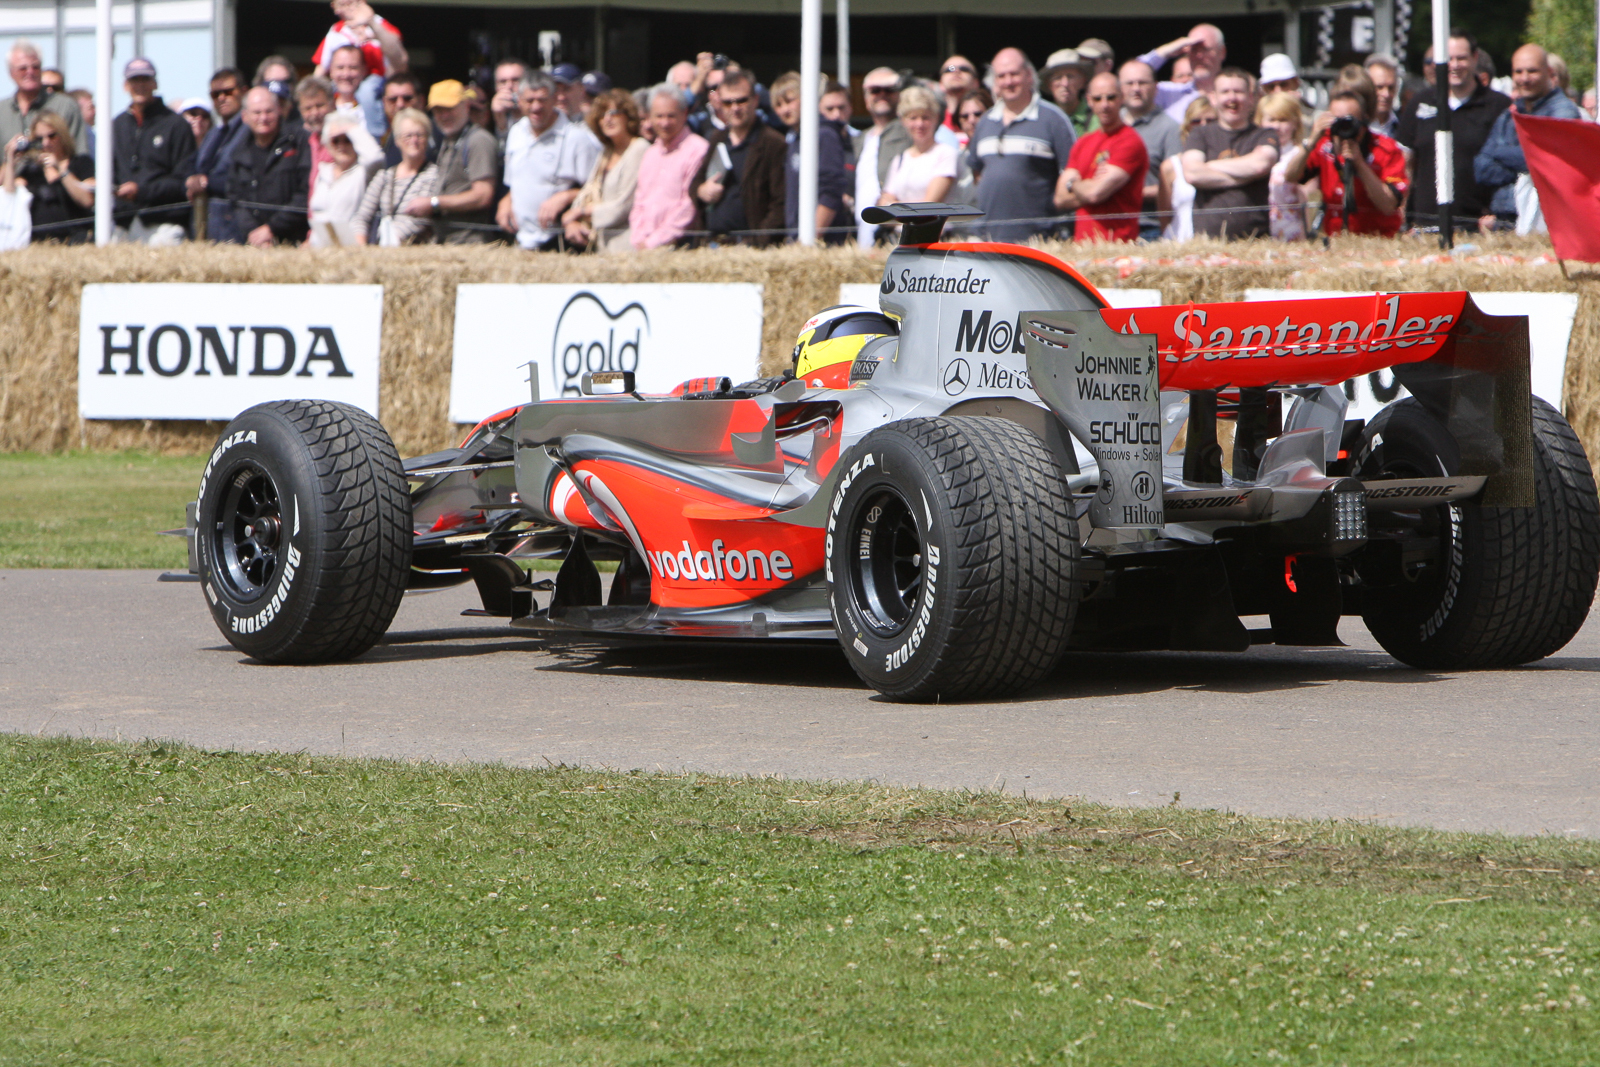 20080711 - Goodwood Festival of Speed -080711 -003